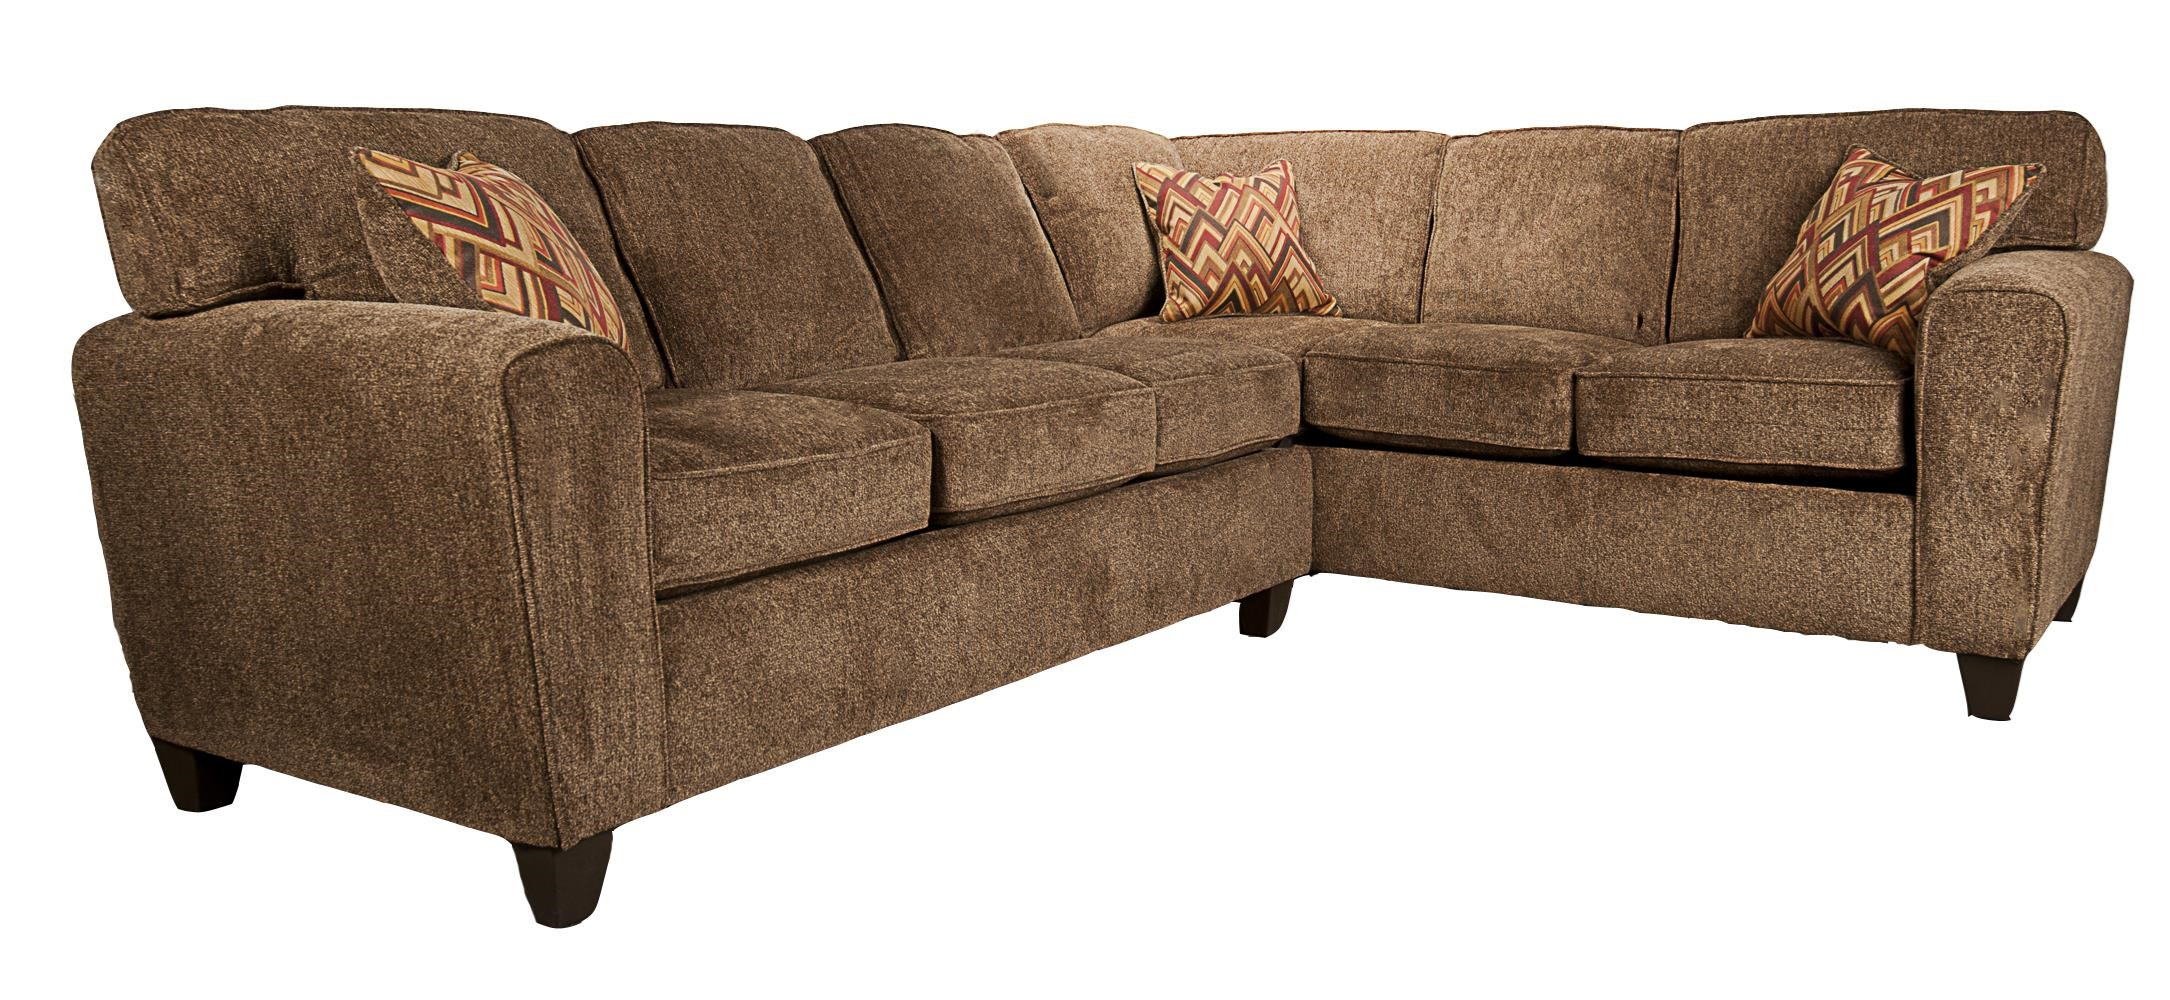 Morris Home Furnishings Wilson - Wilson 2-Piece Sectional - Item Number: 134122413